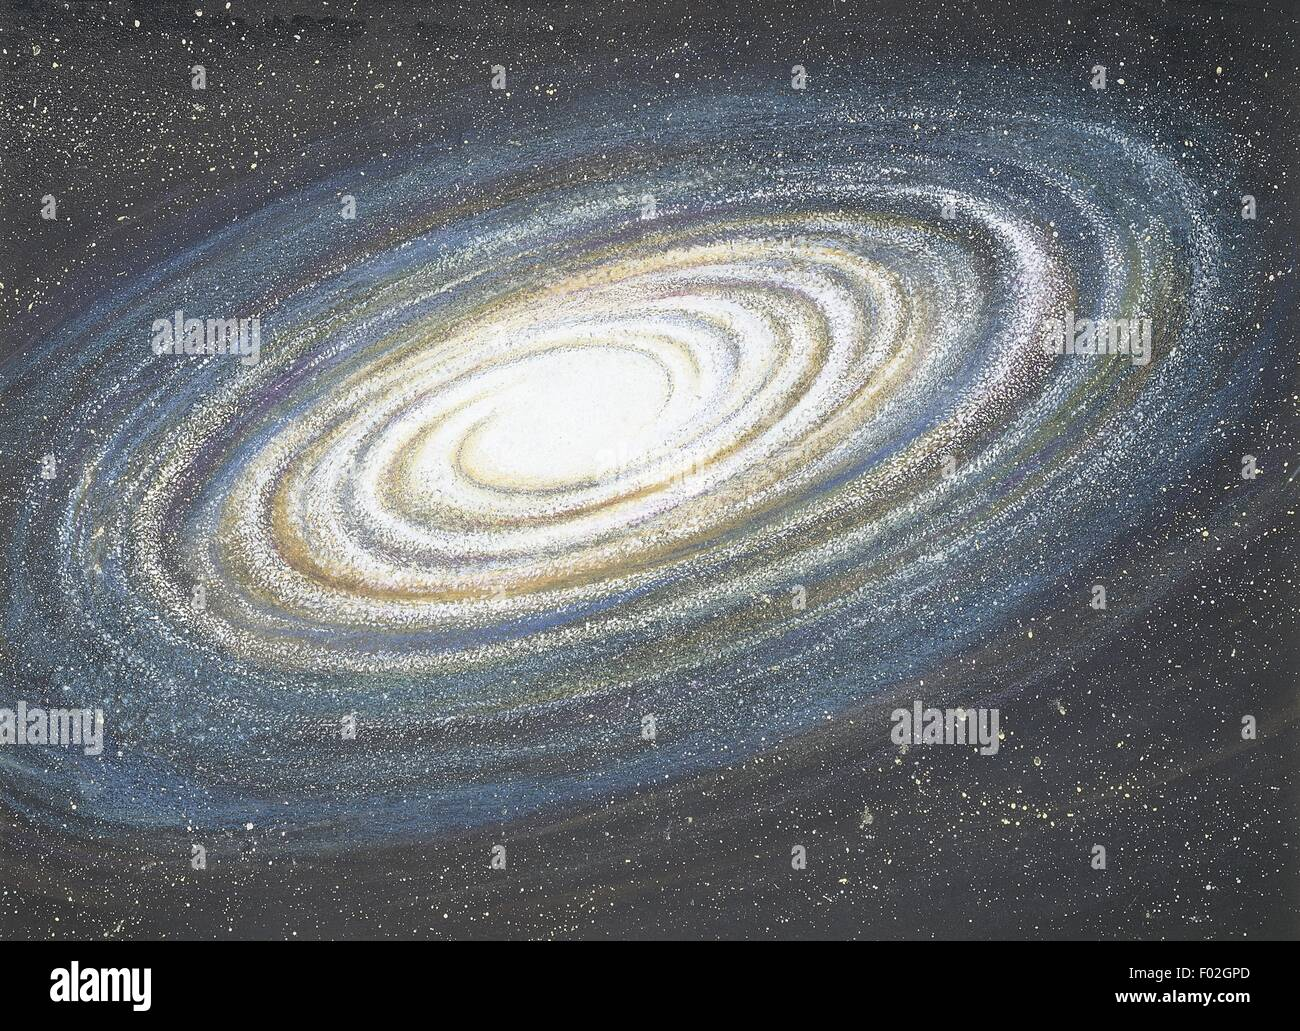 Astronomy - Spiral galaxy, illustration - Stock Image